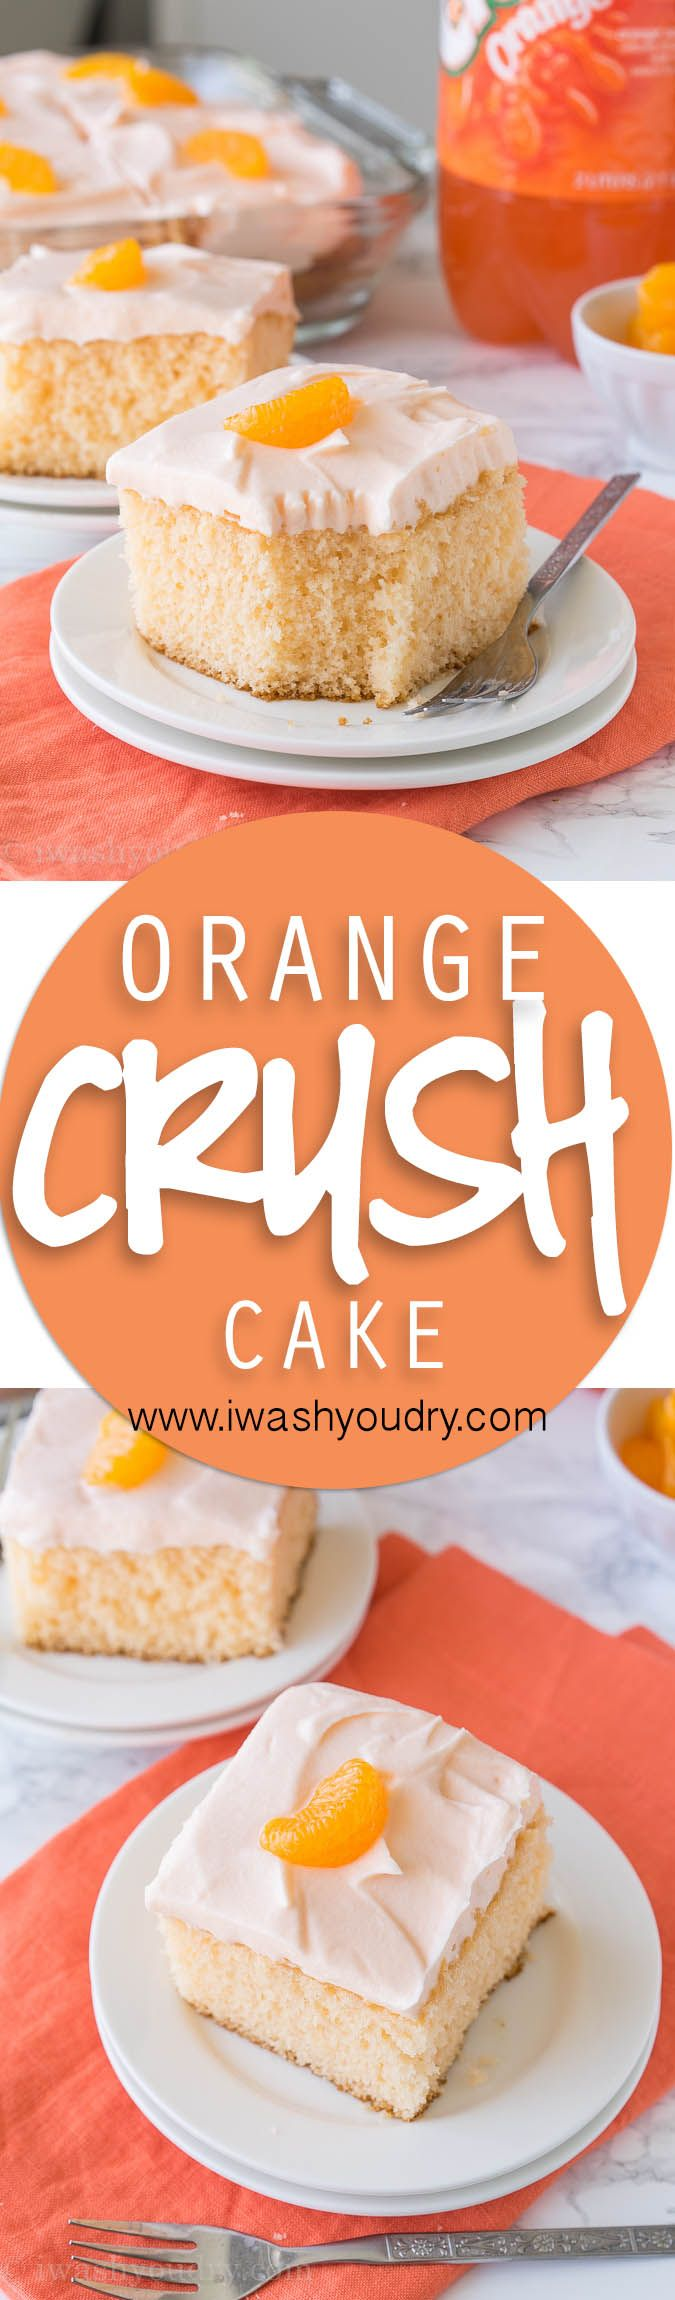 手机壳定制black u   white retro jordans This Orange Crush Cake is a super simple dessert recipe that is infused with Orange Crush Soda Perfect for pot lucks and kids